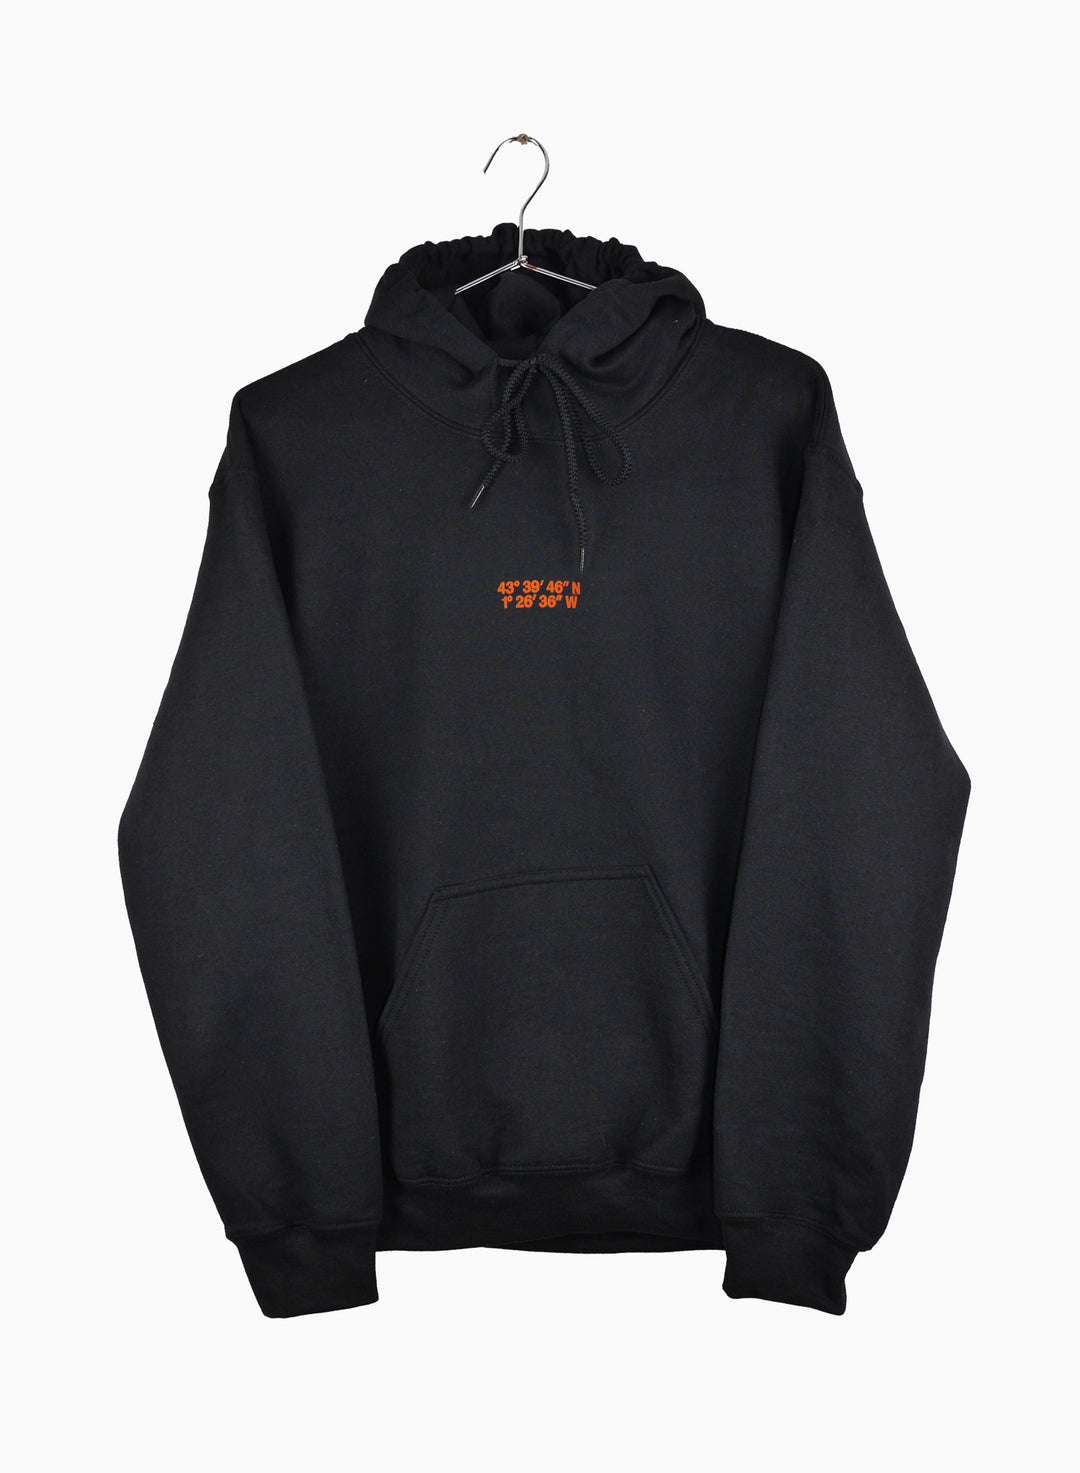 Surfin Estate coordinates logo hoodie, black